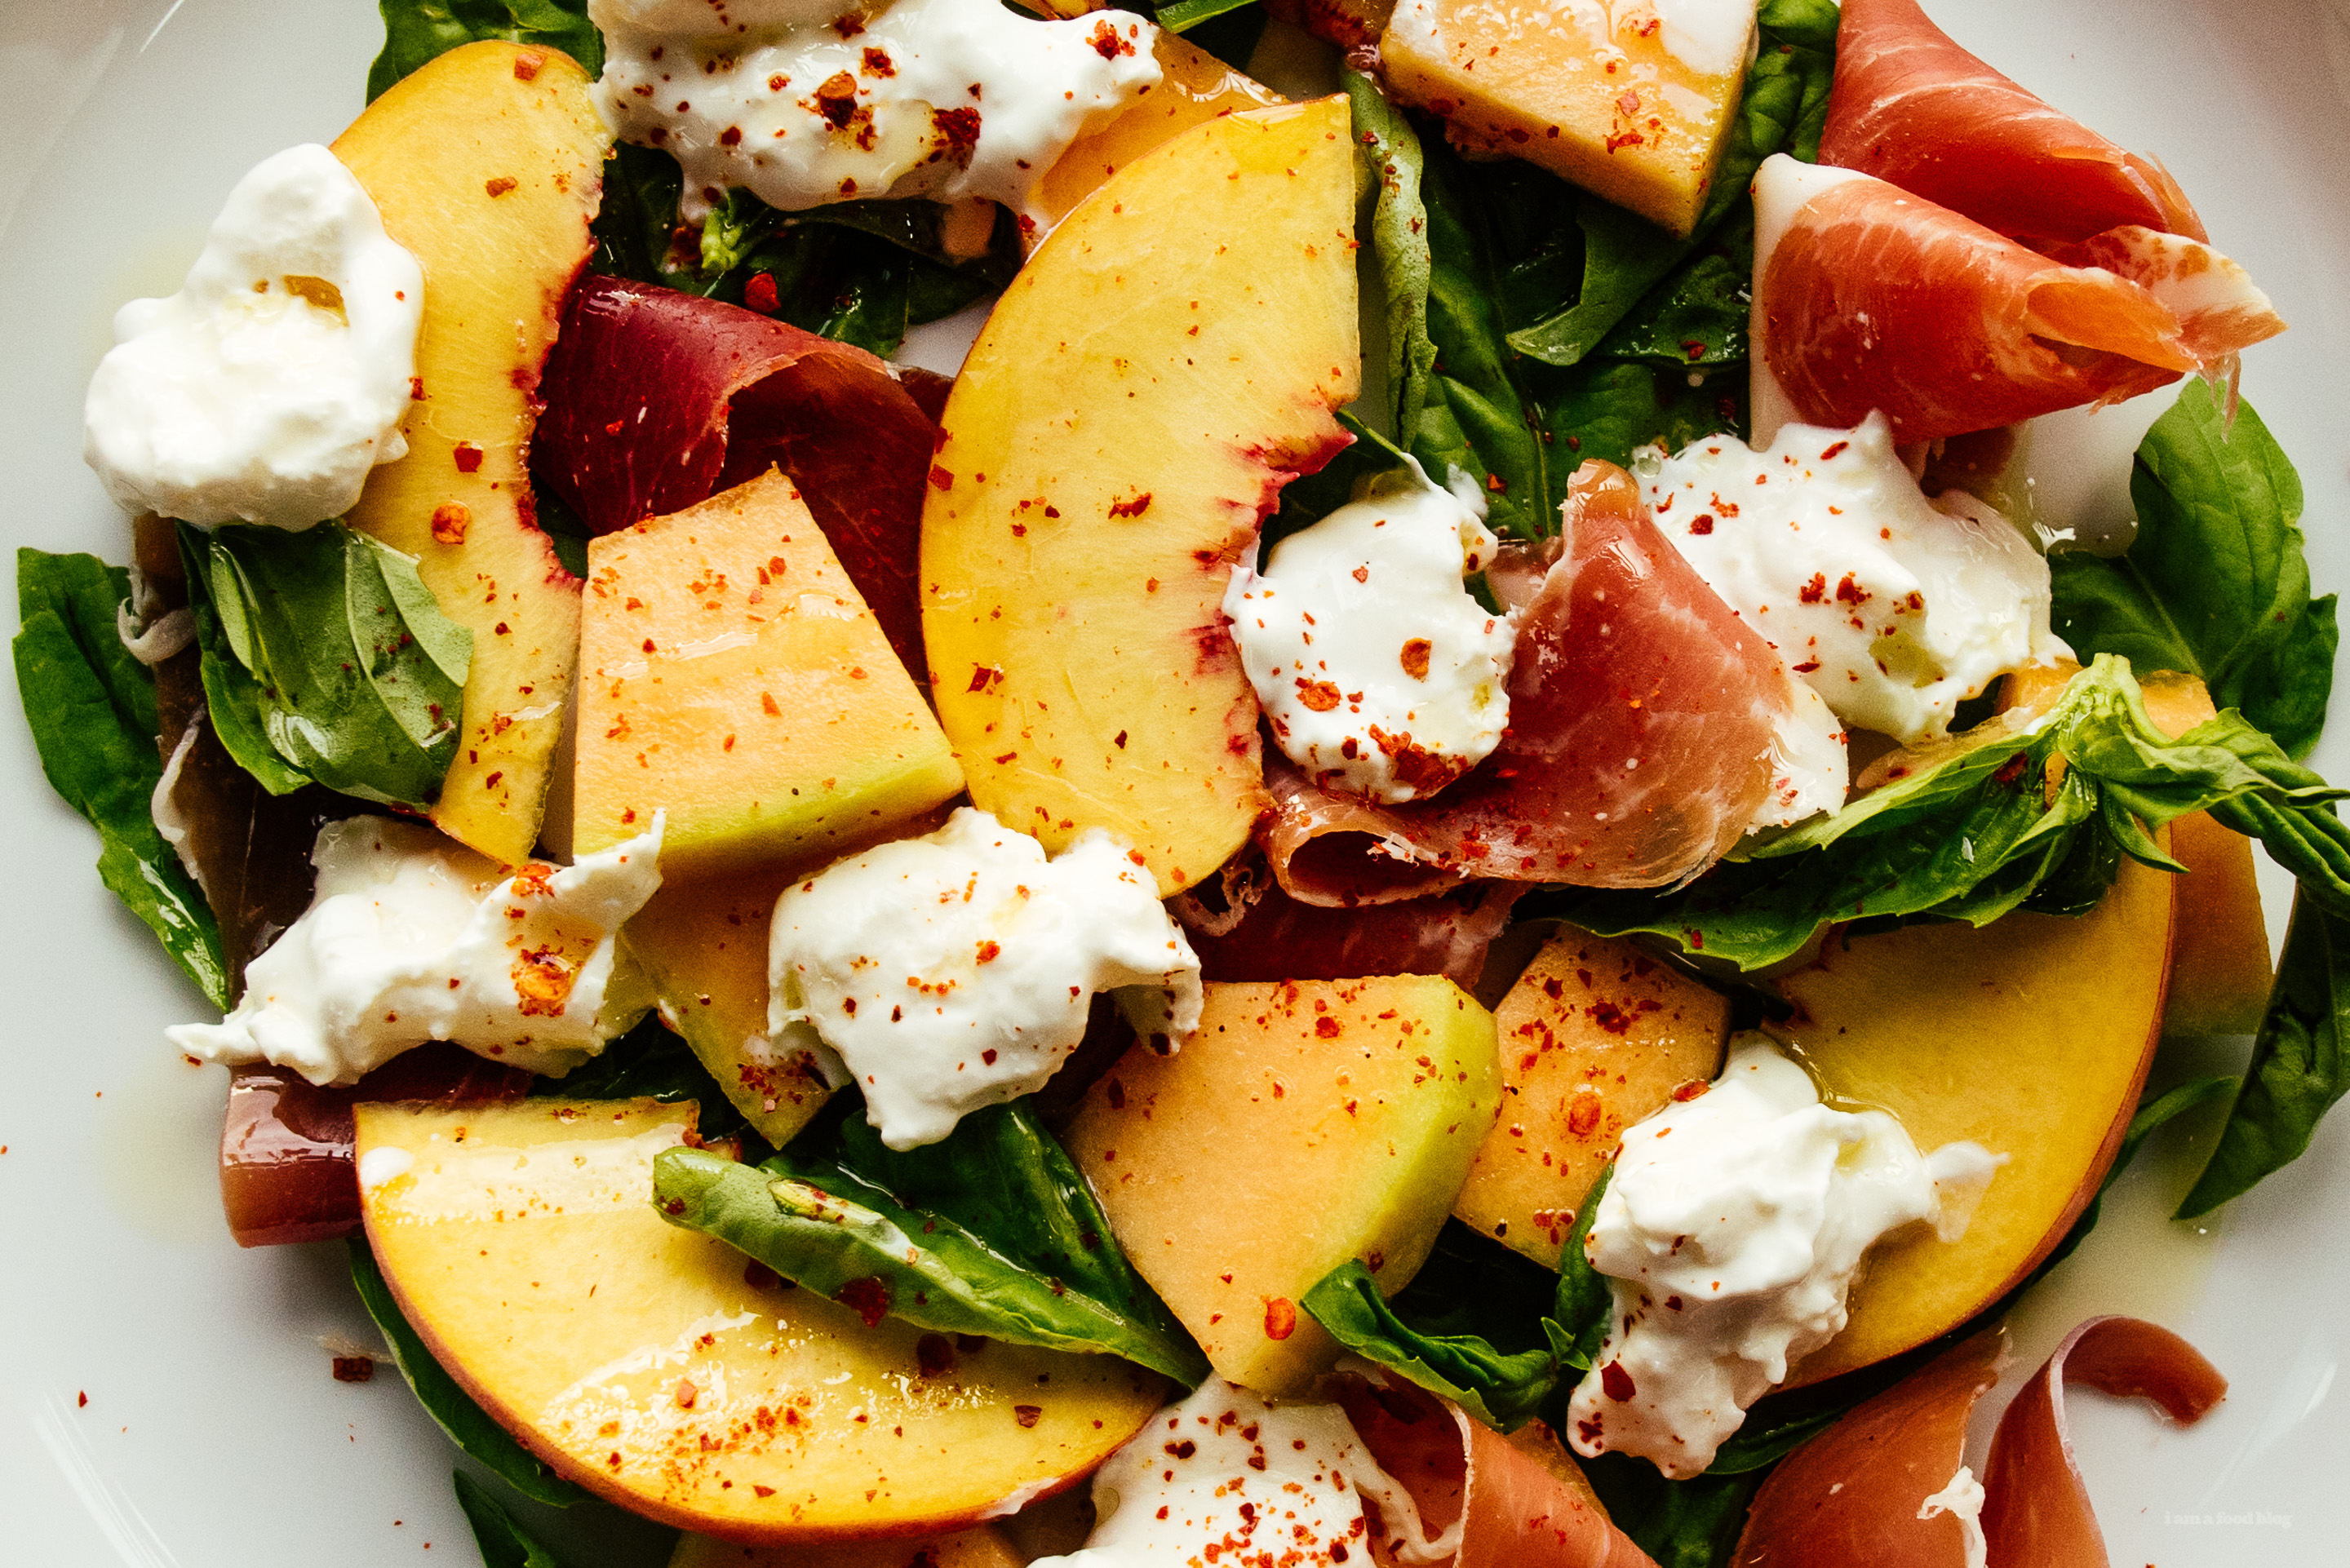 The Summer Salad You Should Make Right Now: Peach Melon Basil and Burrata - www.iamafoodblog.com